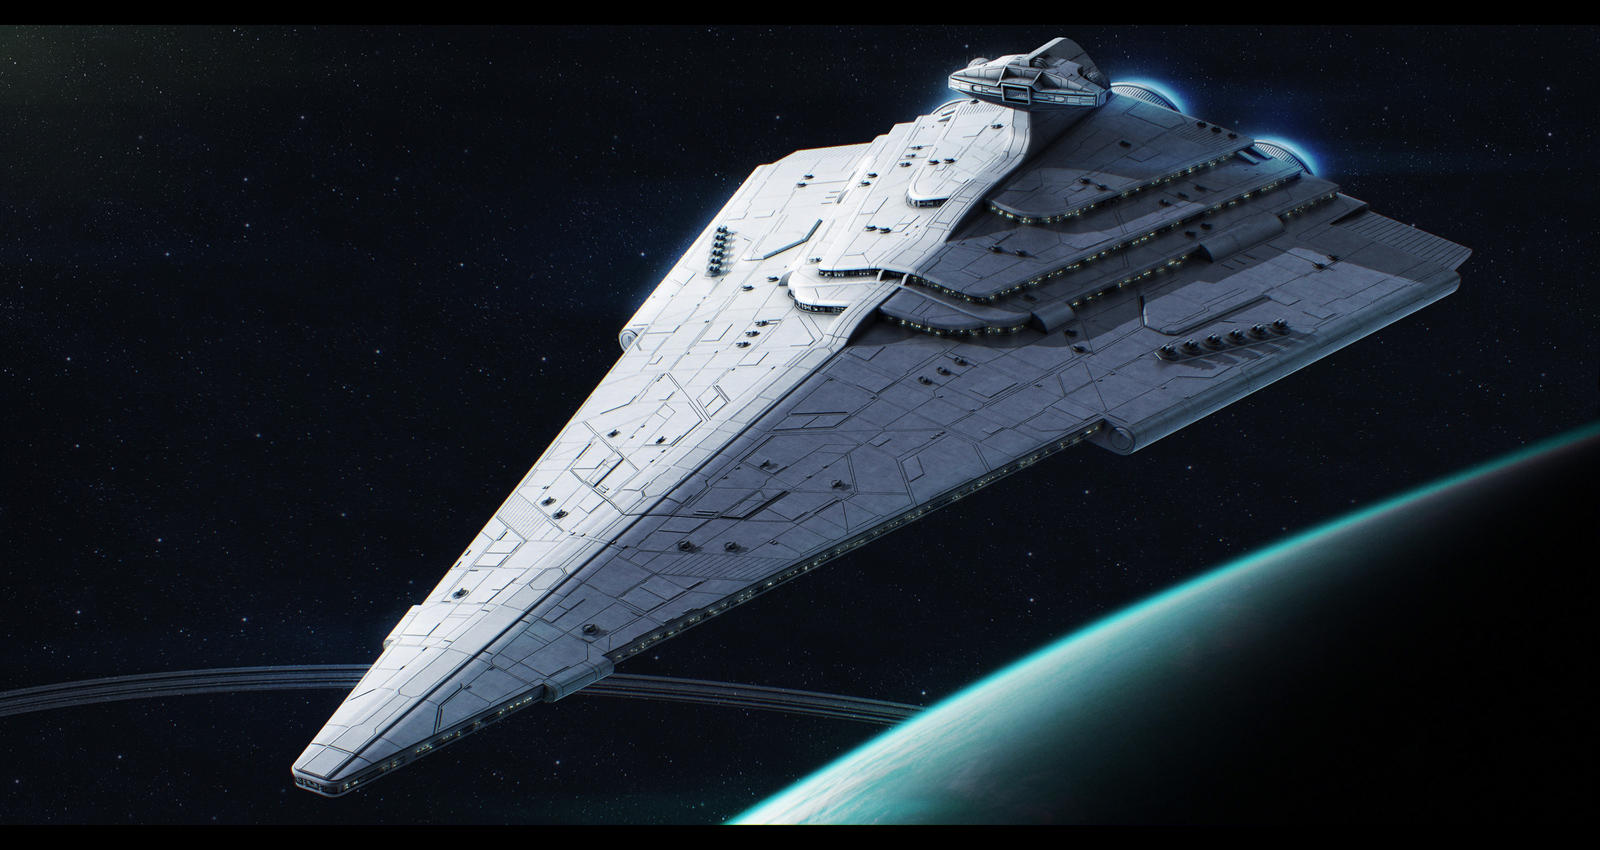 Rendili Stardrive Victory Iii Class Star Destroyer By